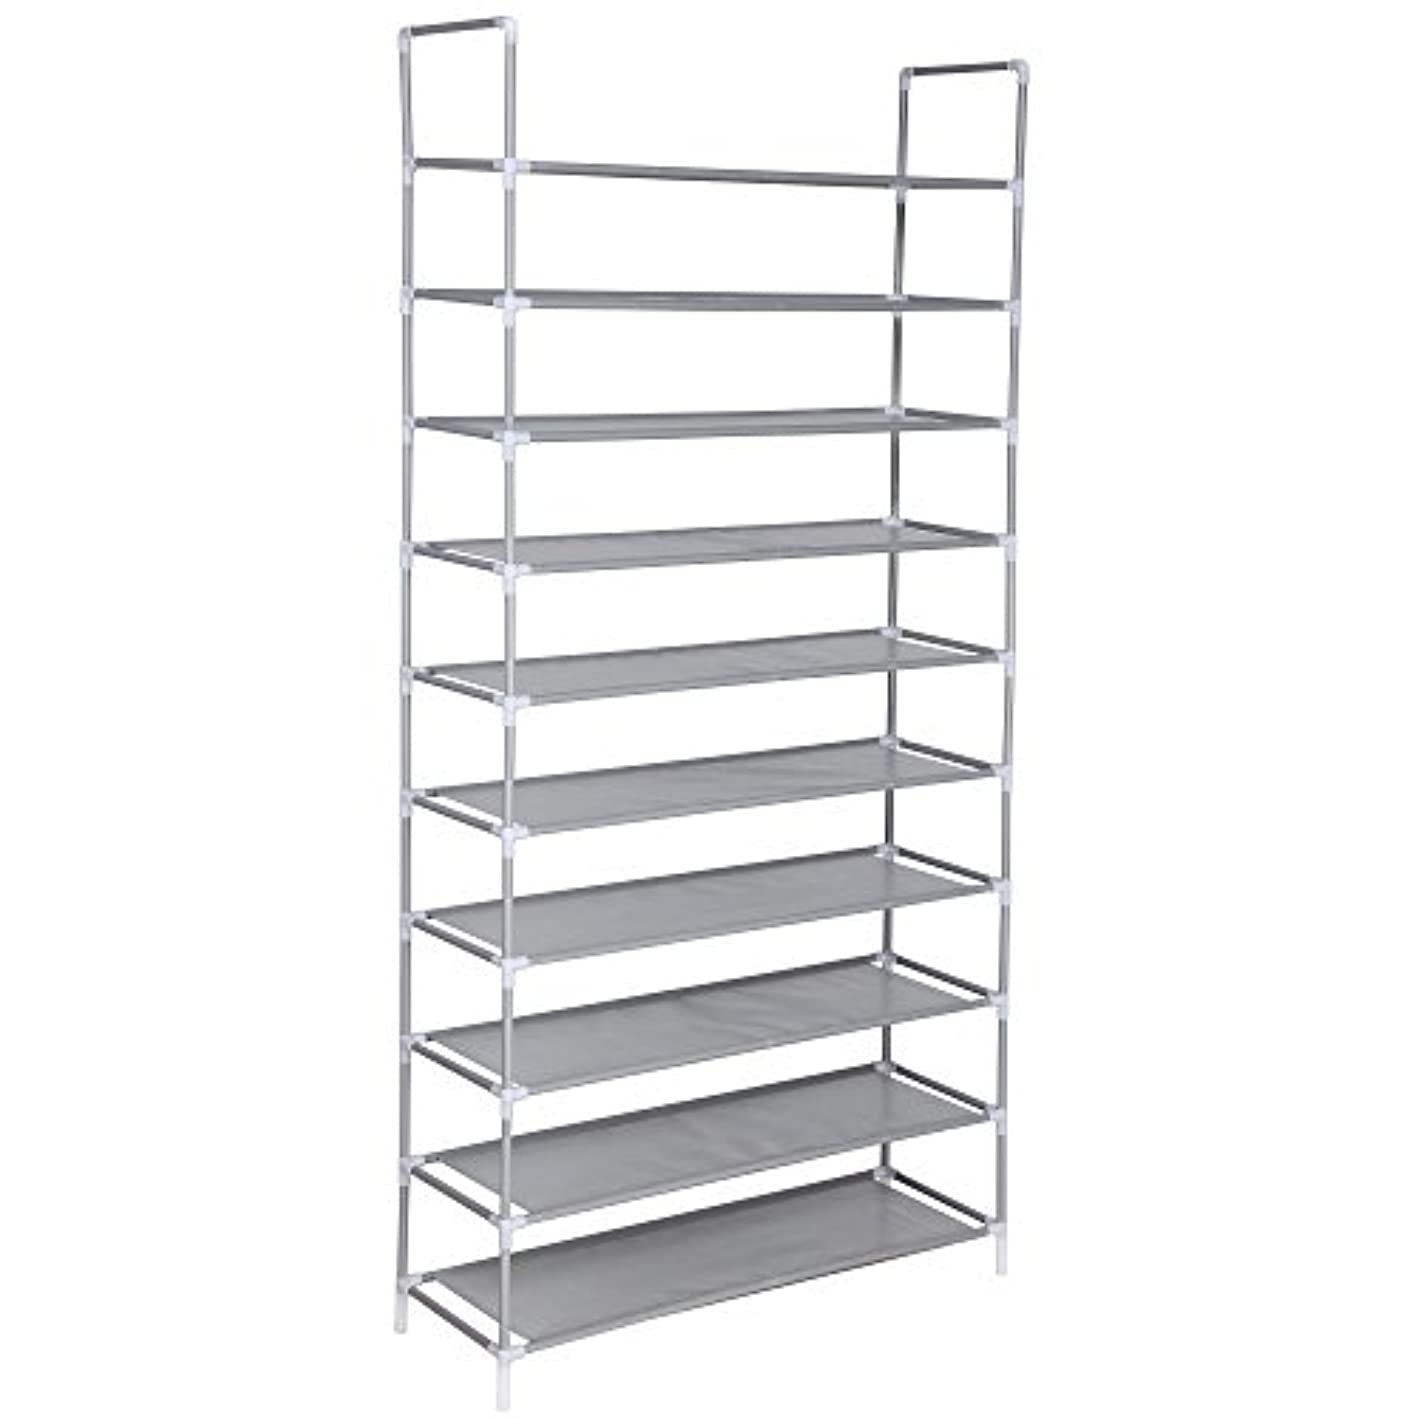 Yiilove 10 Tier Shoes Rack Stand Shelf Shoes Organizer Storage 32 Pairs Shoes, US Stock (White-10 Tier)